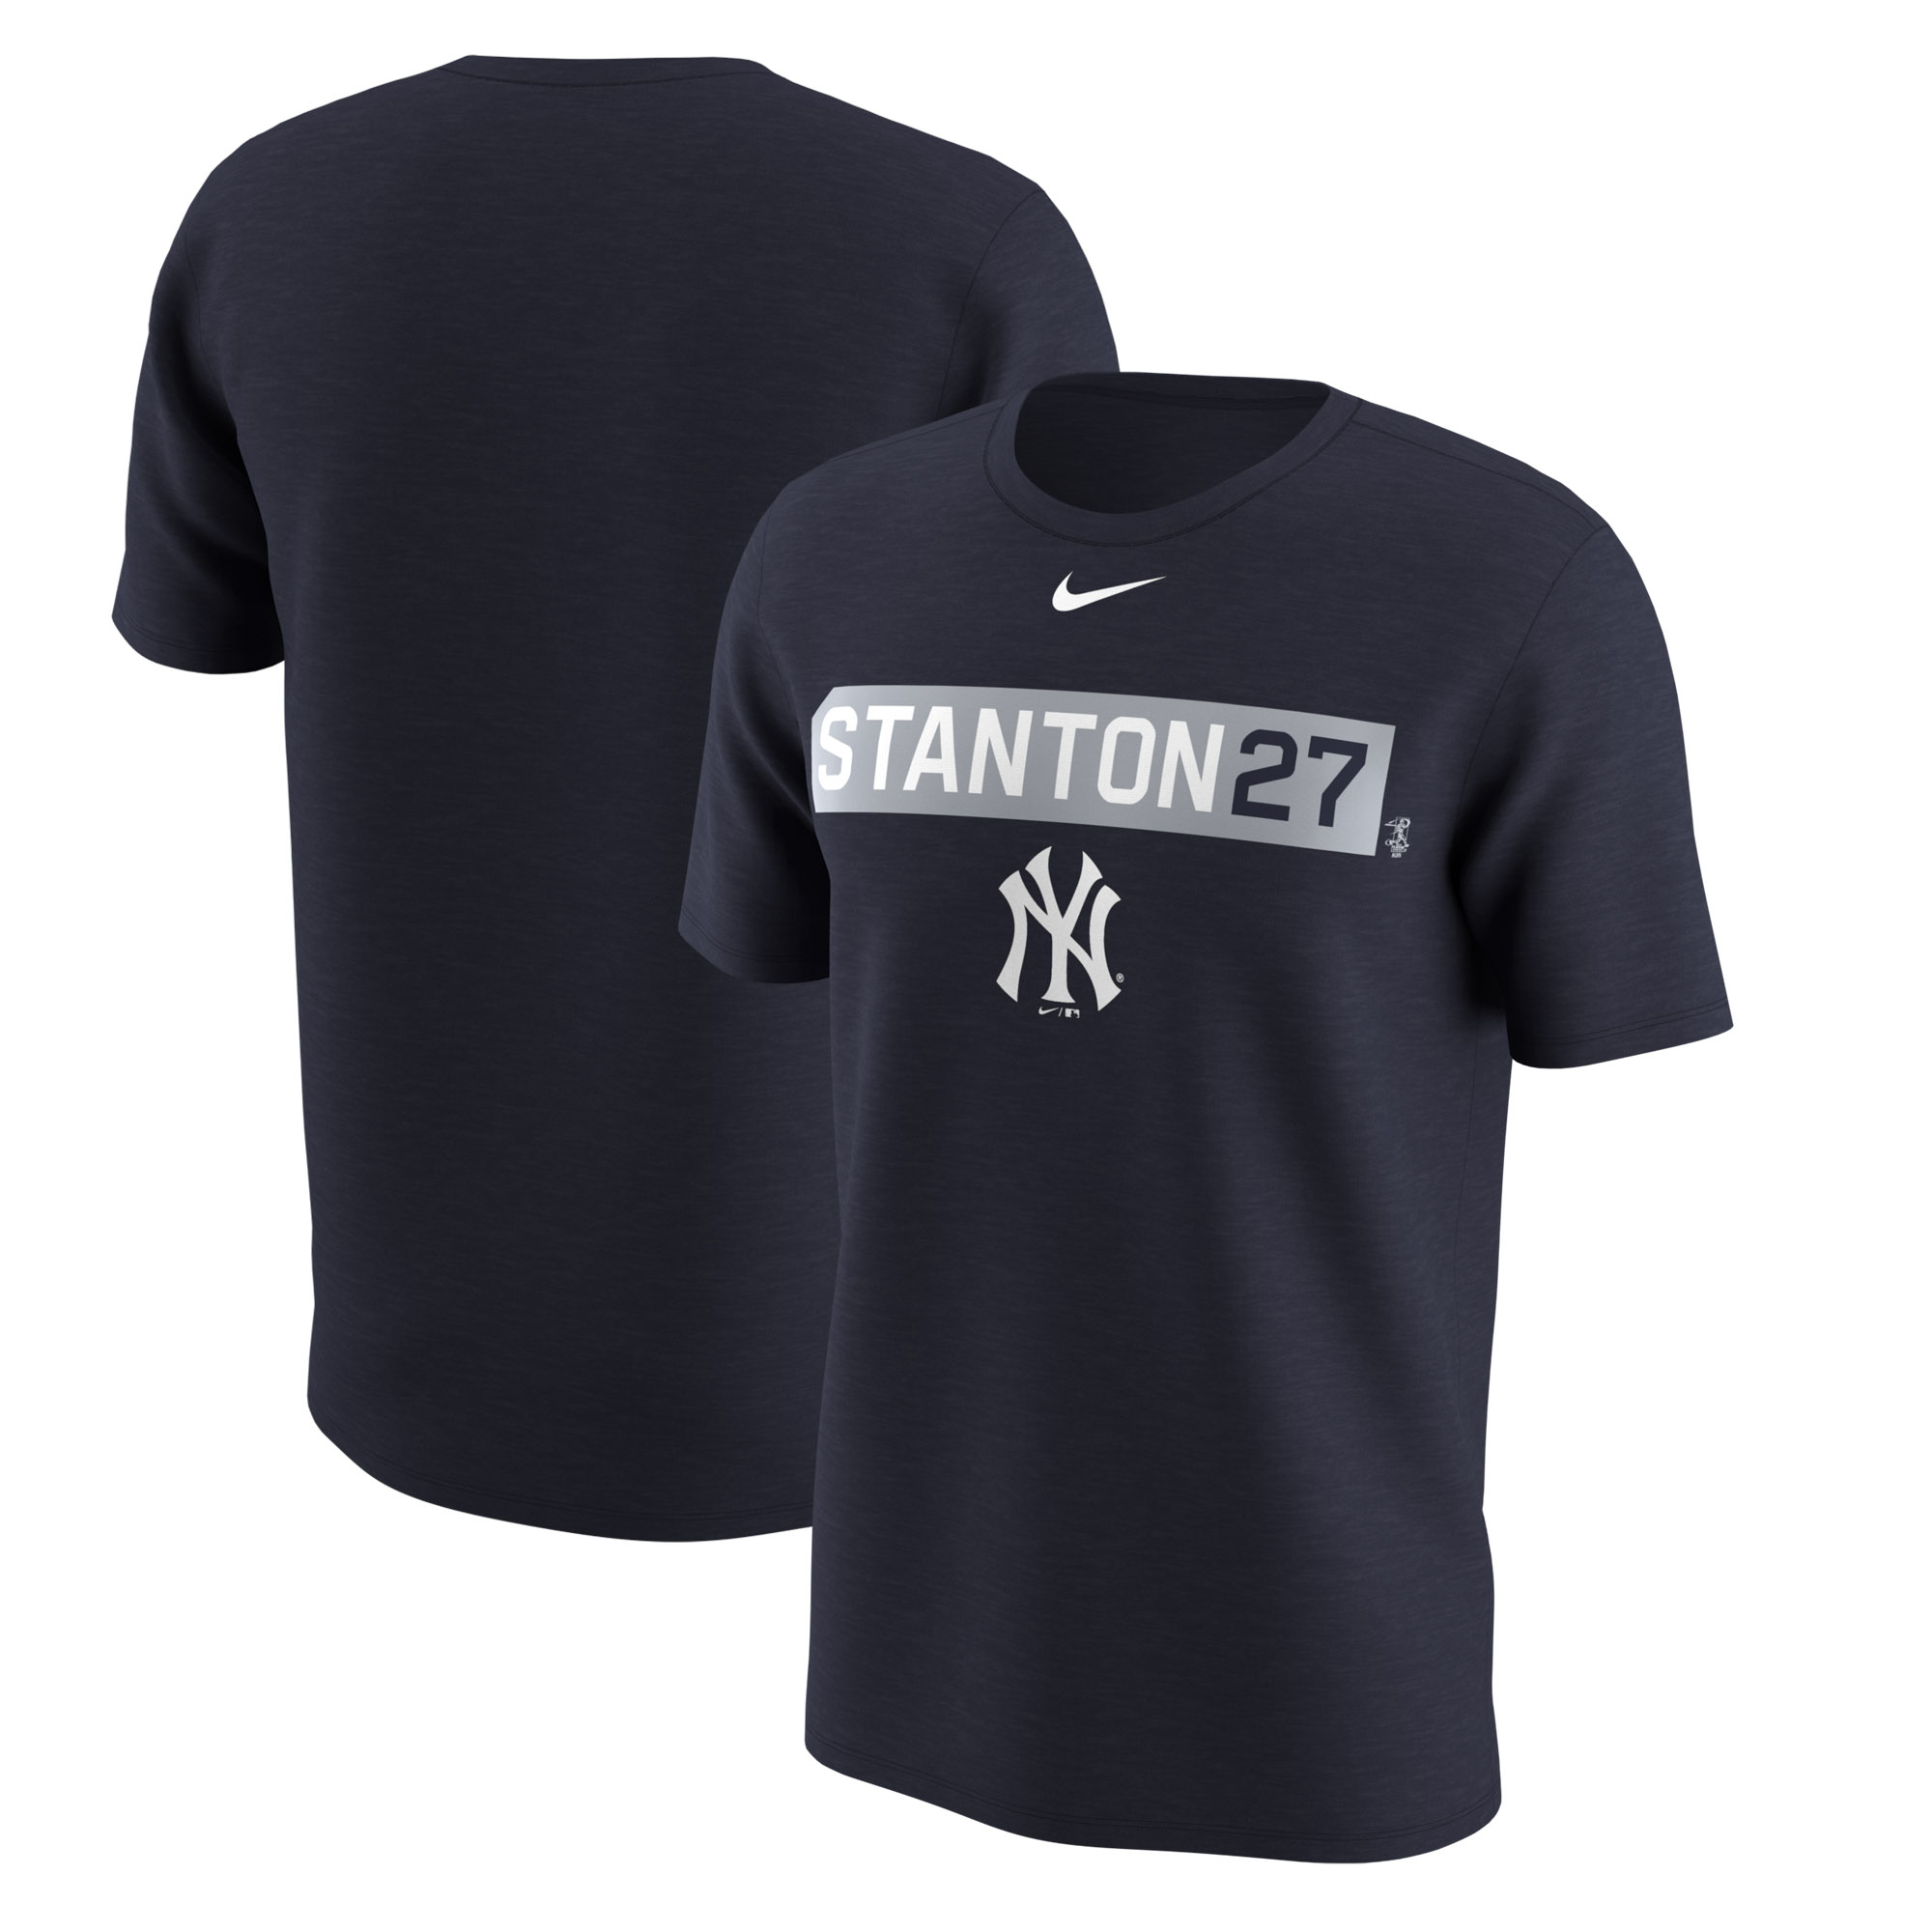 Giancarlo Stanton New York Yankees Nike Legend Player Name & Number Nickname Performance T-Shirt - Navy